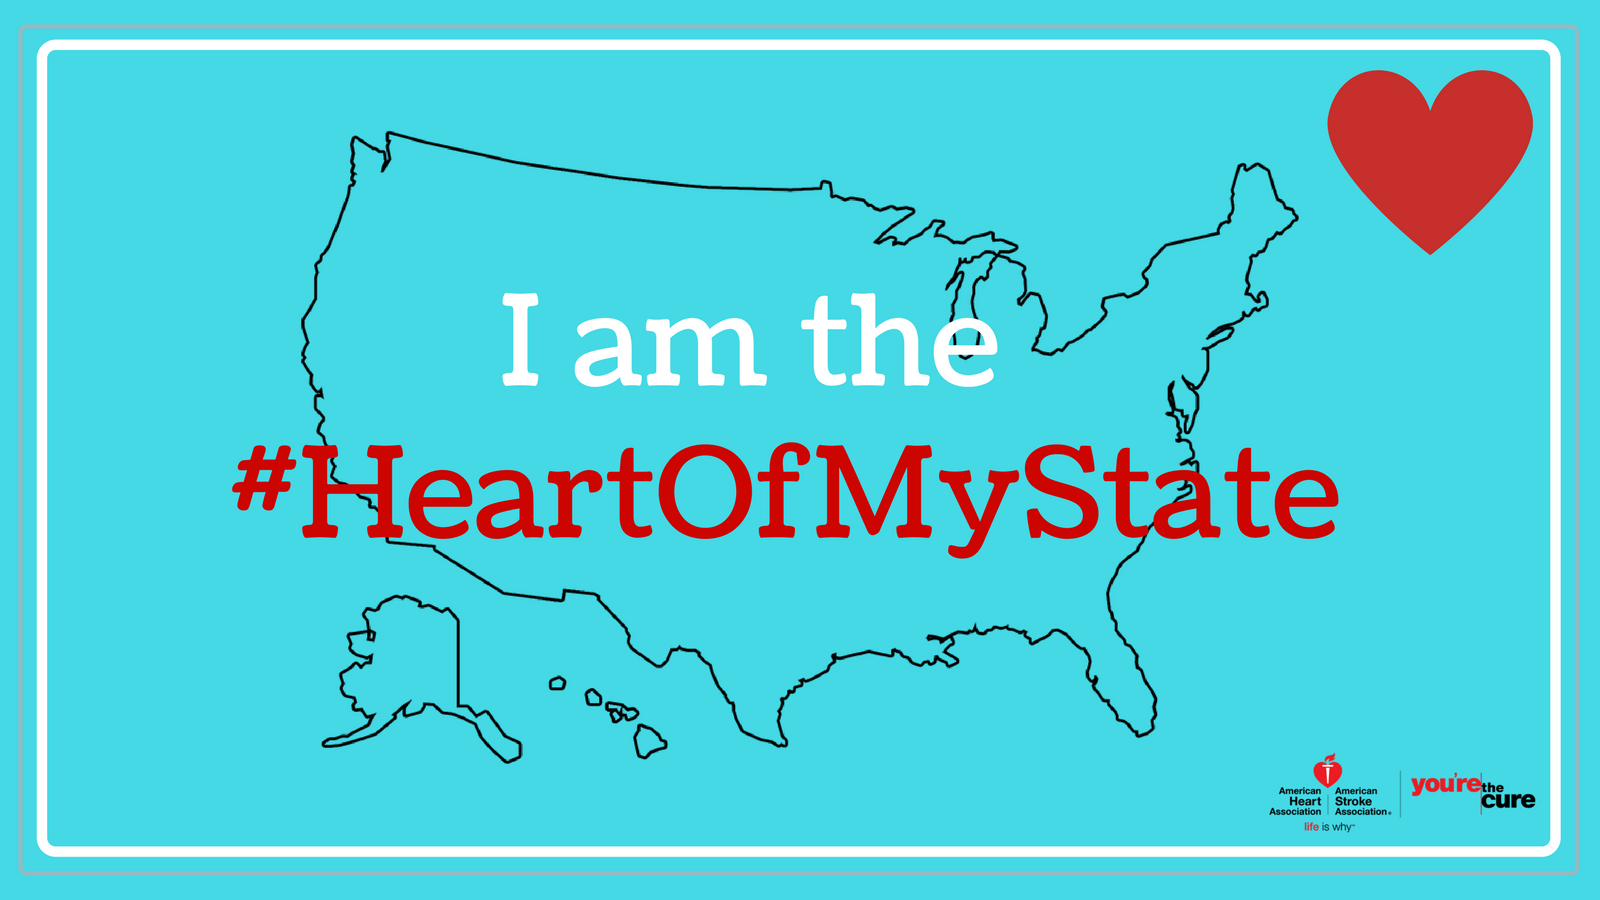 Will You Join the #HeartOfMyState?